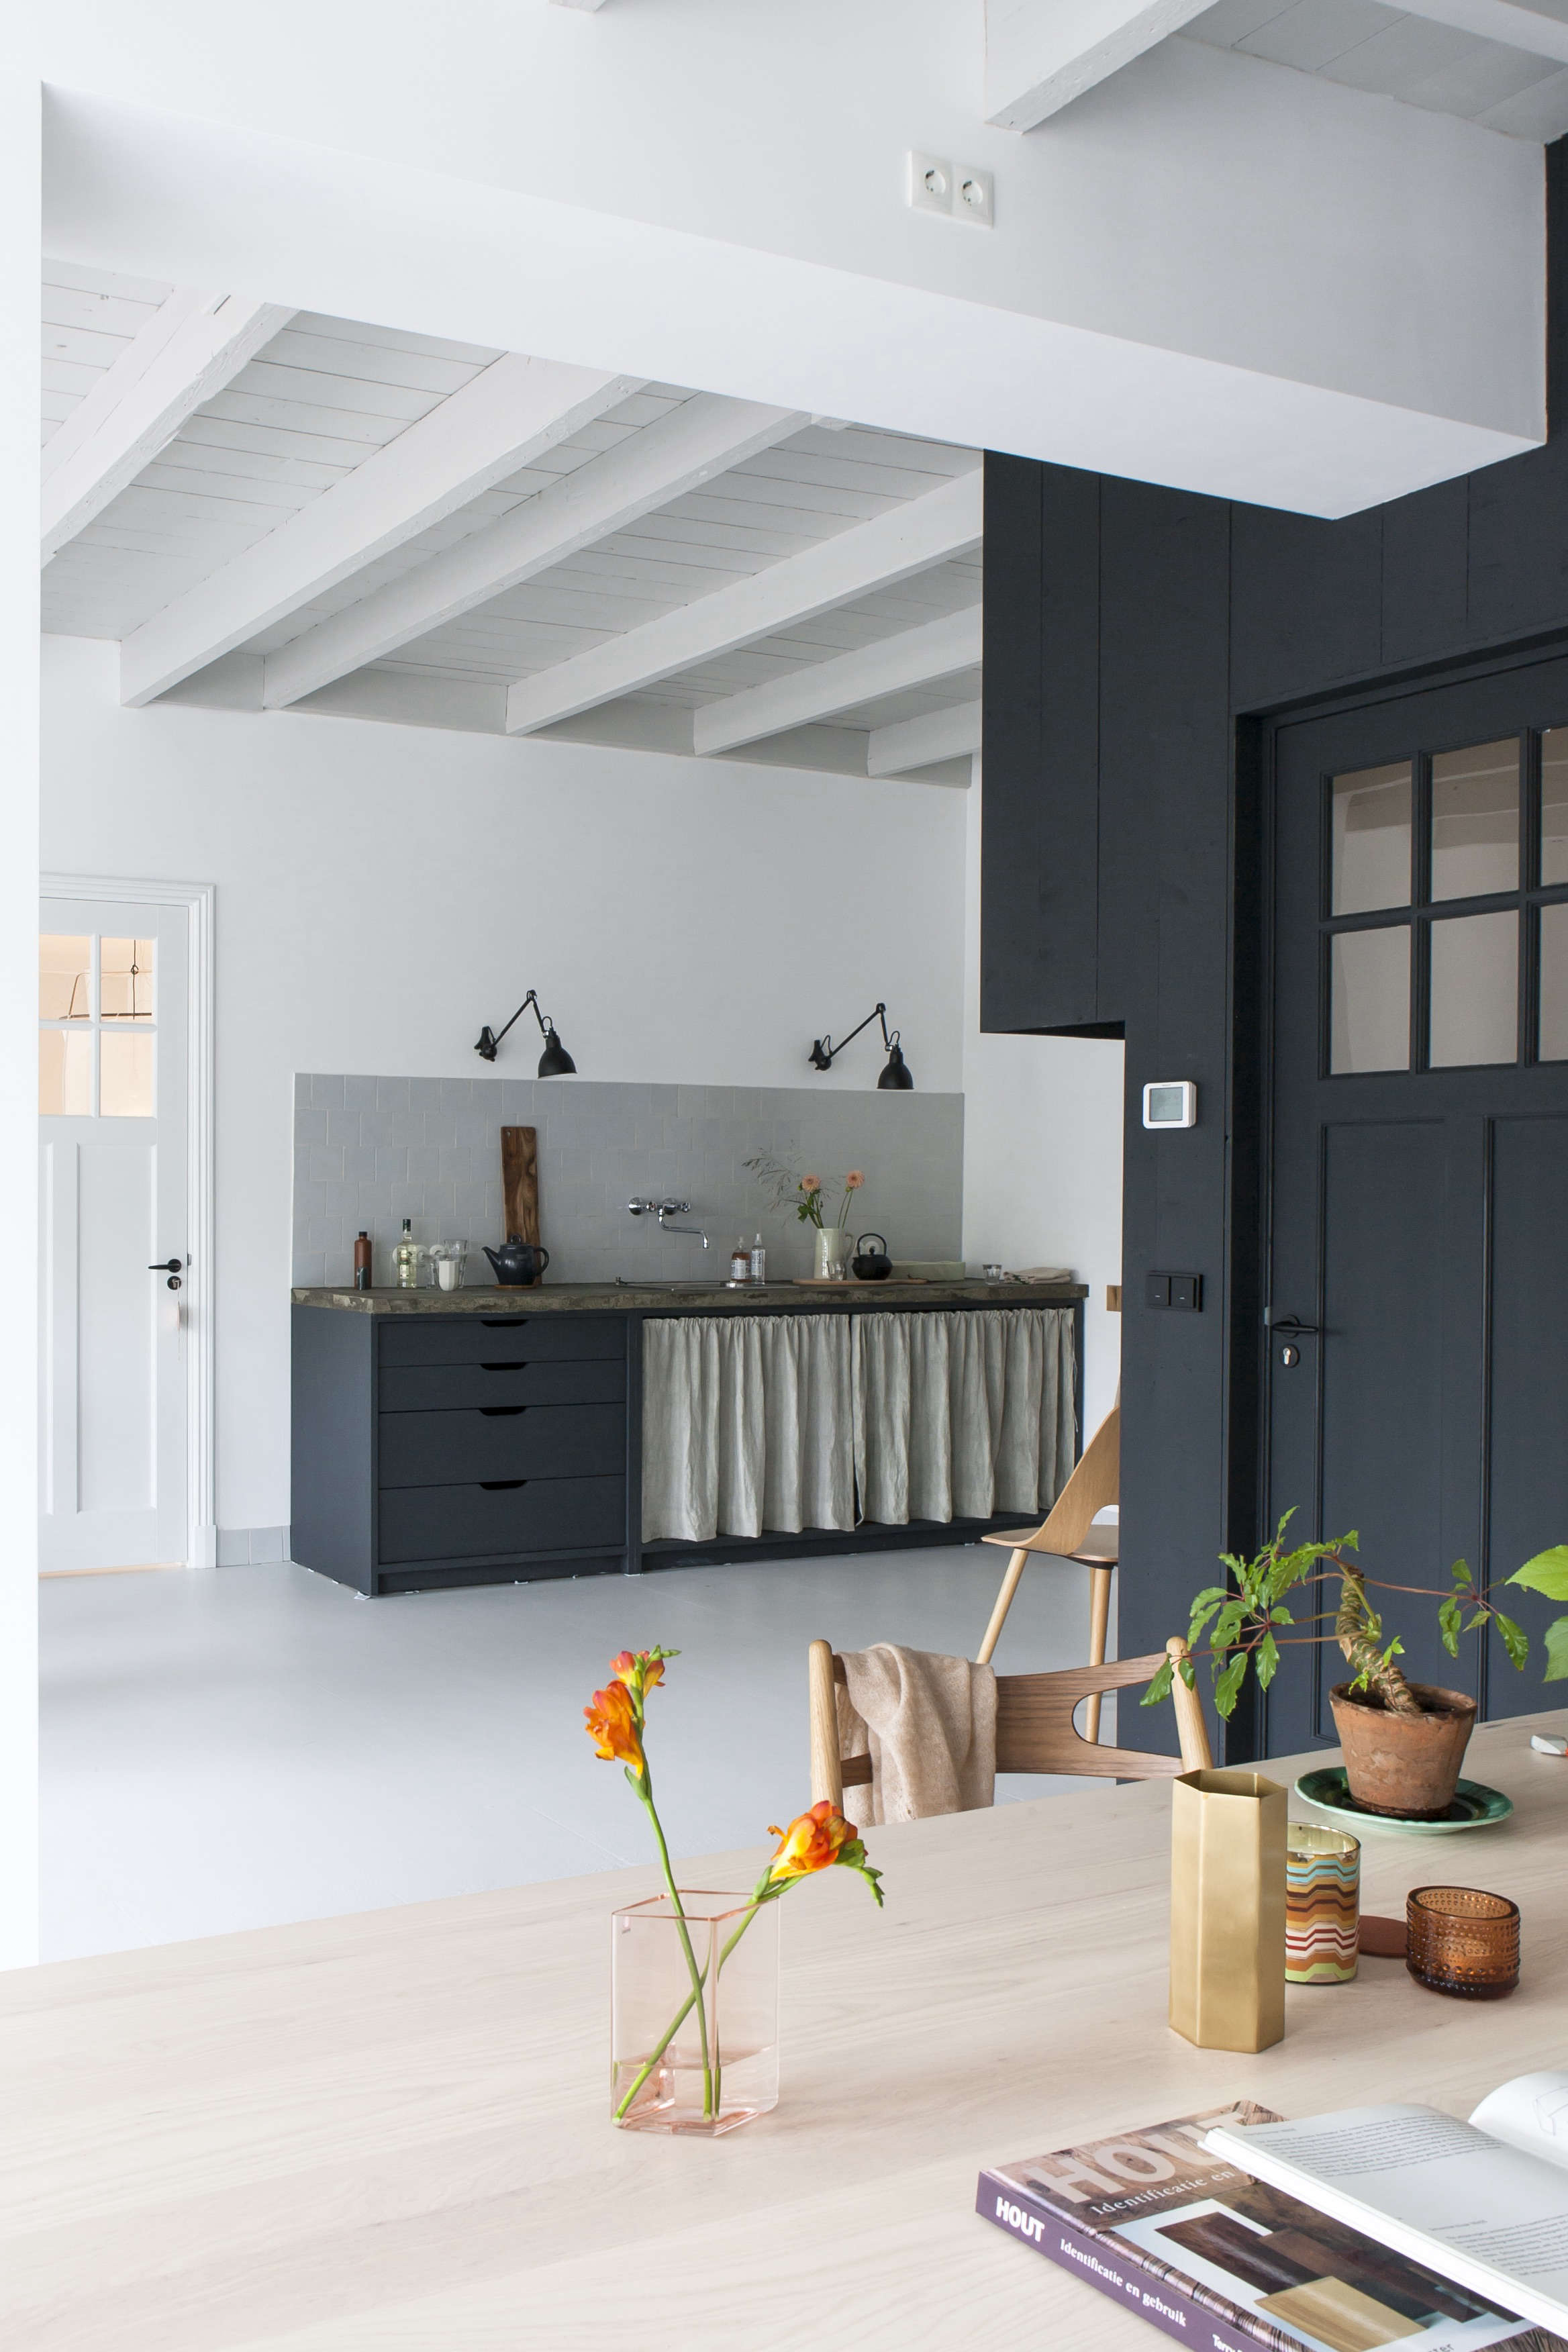 steal this look a rustic modern kitchen in the netherlands - Rustic Modern Kitchen